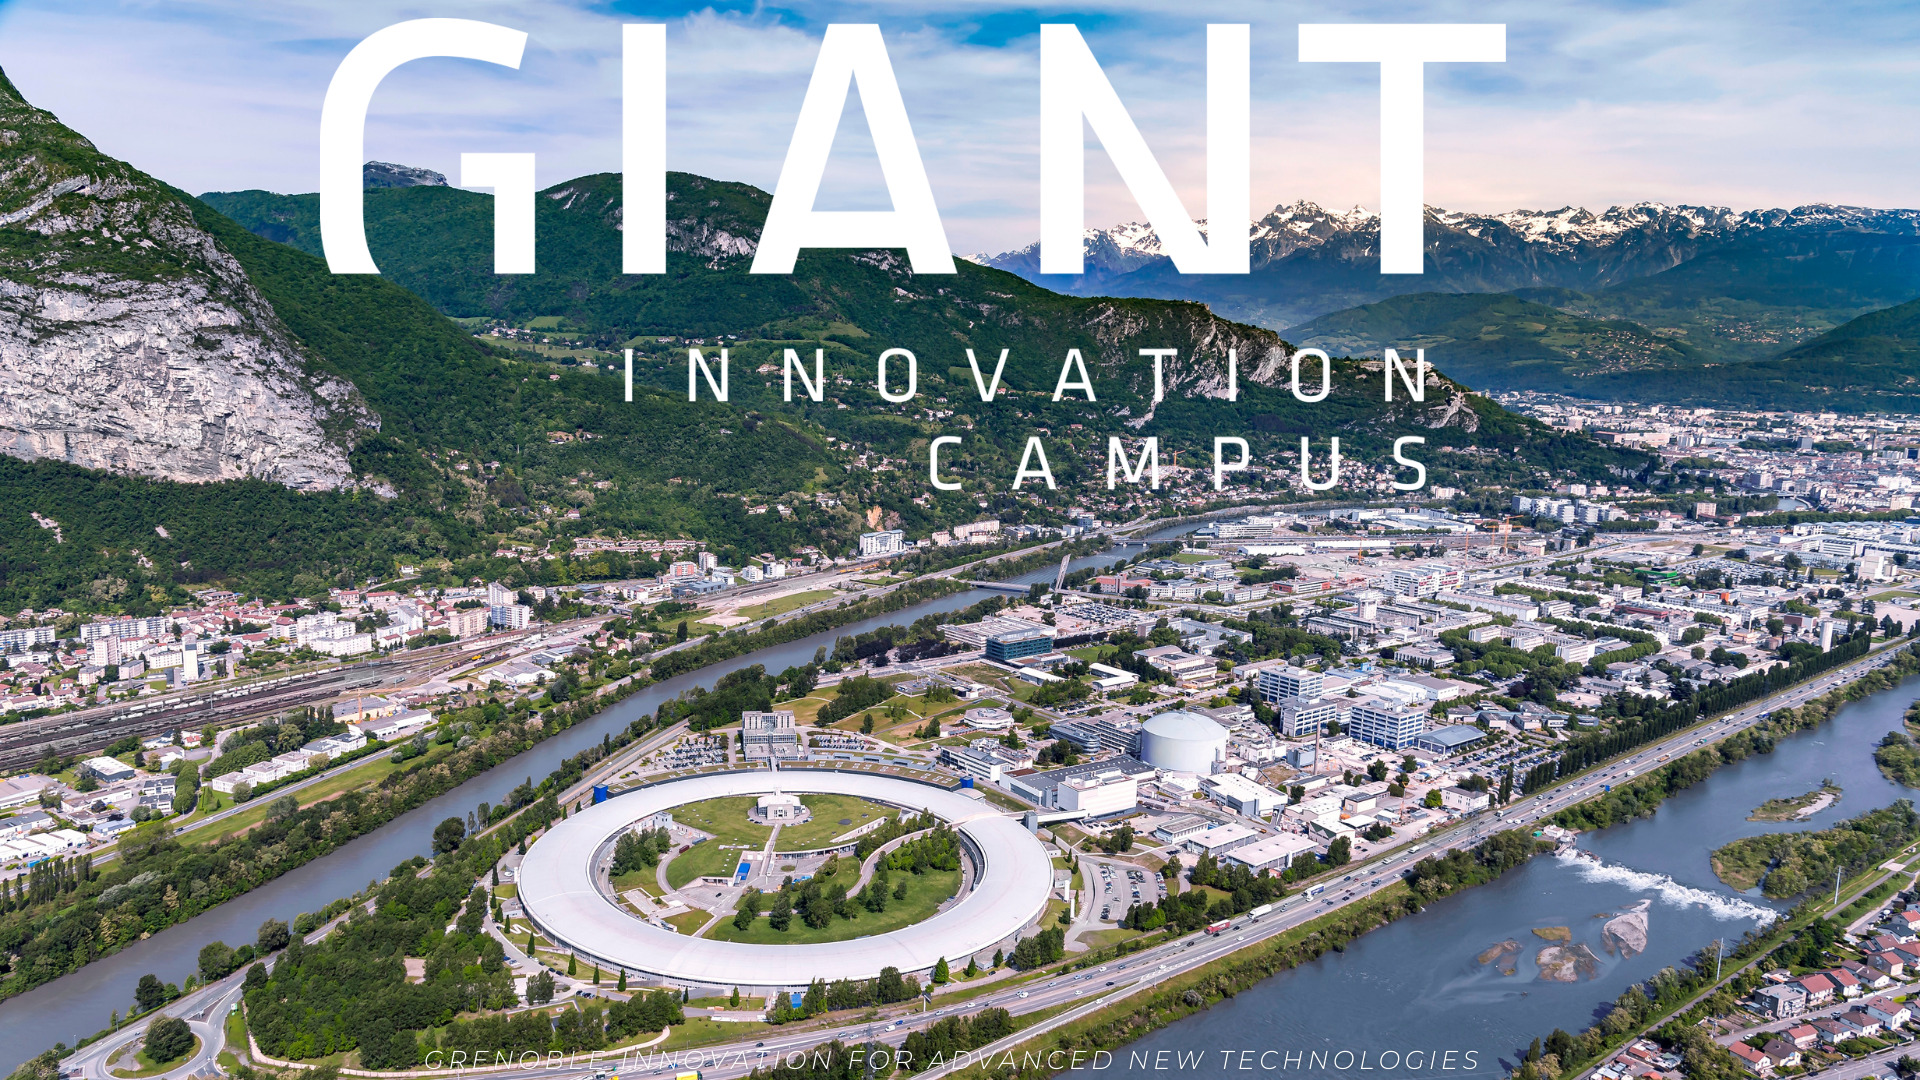 GIANT Innovation Campus